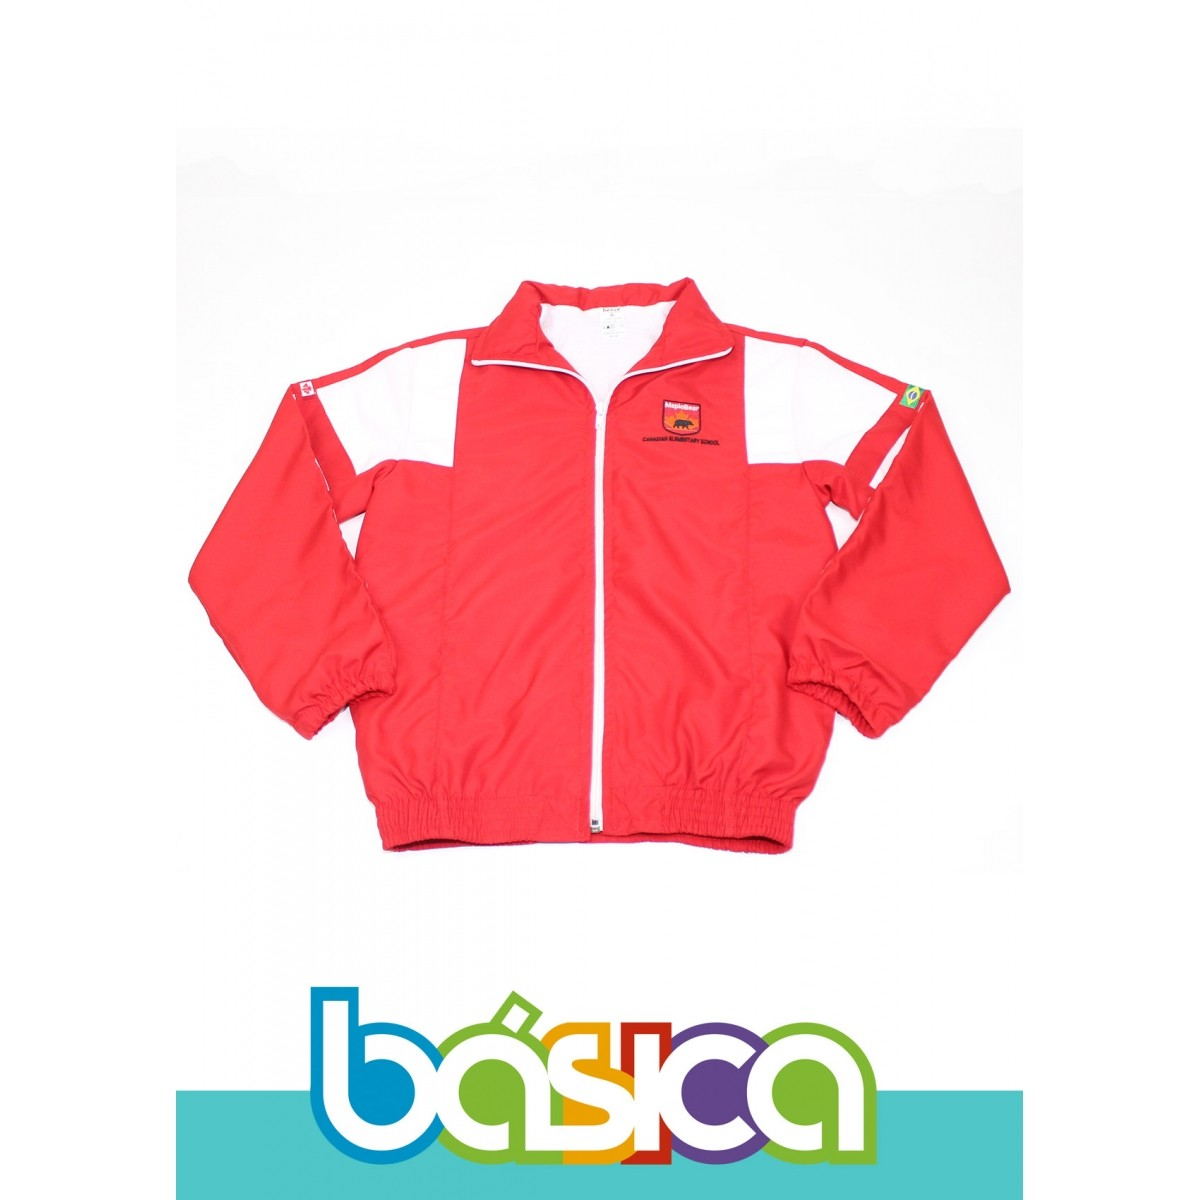 Blusão de Microfibra Uniforme Maple Bear Fundamental  - BÁSICA UNIFORMES